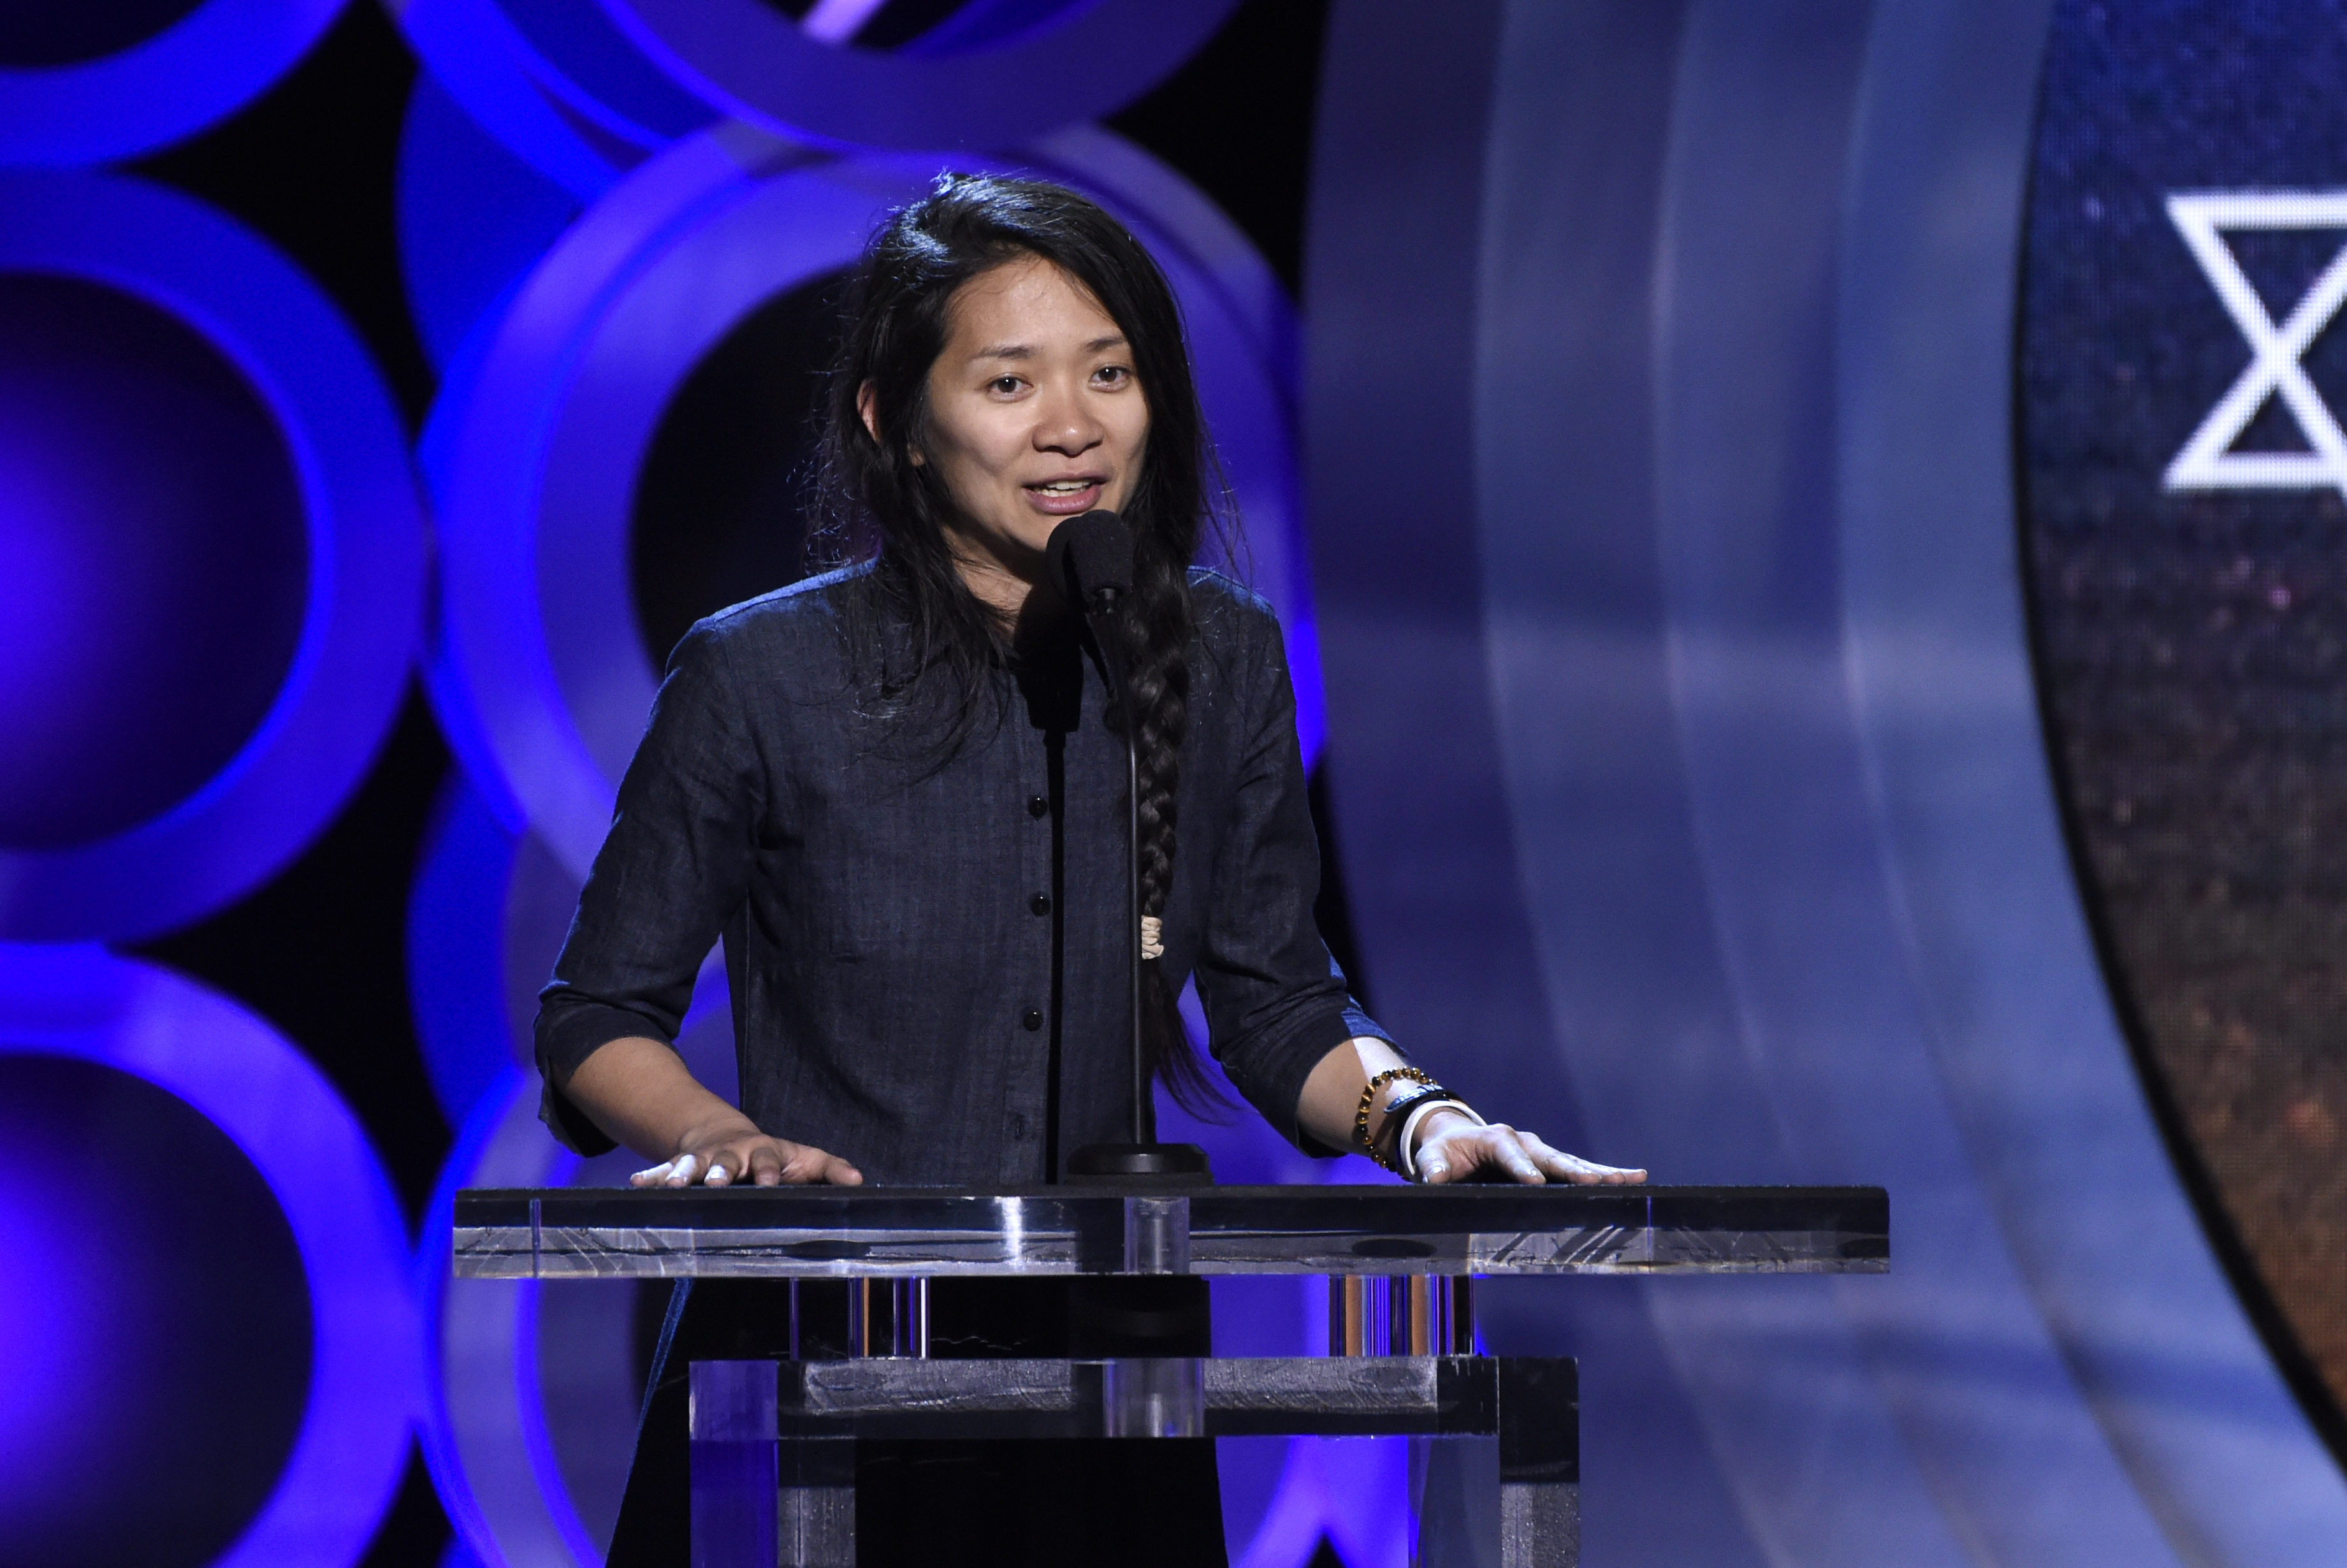 Chloe Zhao accepts the Bonnie award at the 33rd Film Independent Spirit Awards on Saturday, March 3, 2018, in Santa Monica, Calif. (Photo by Chris Pizzello/Invision/AP)